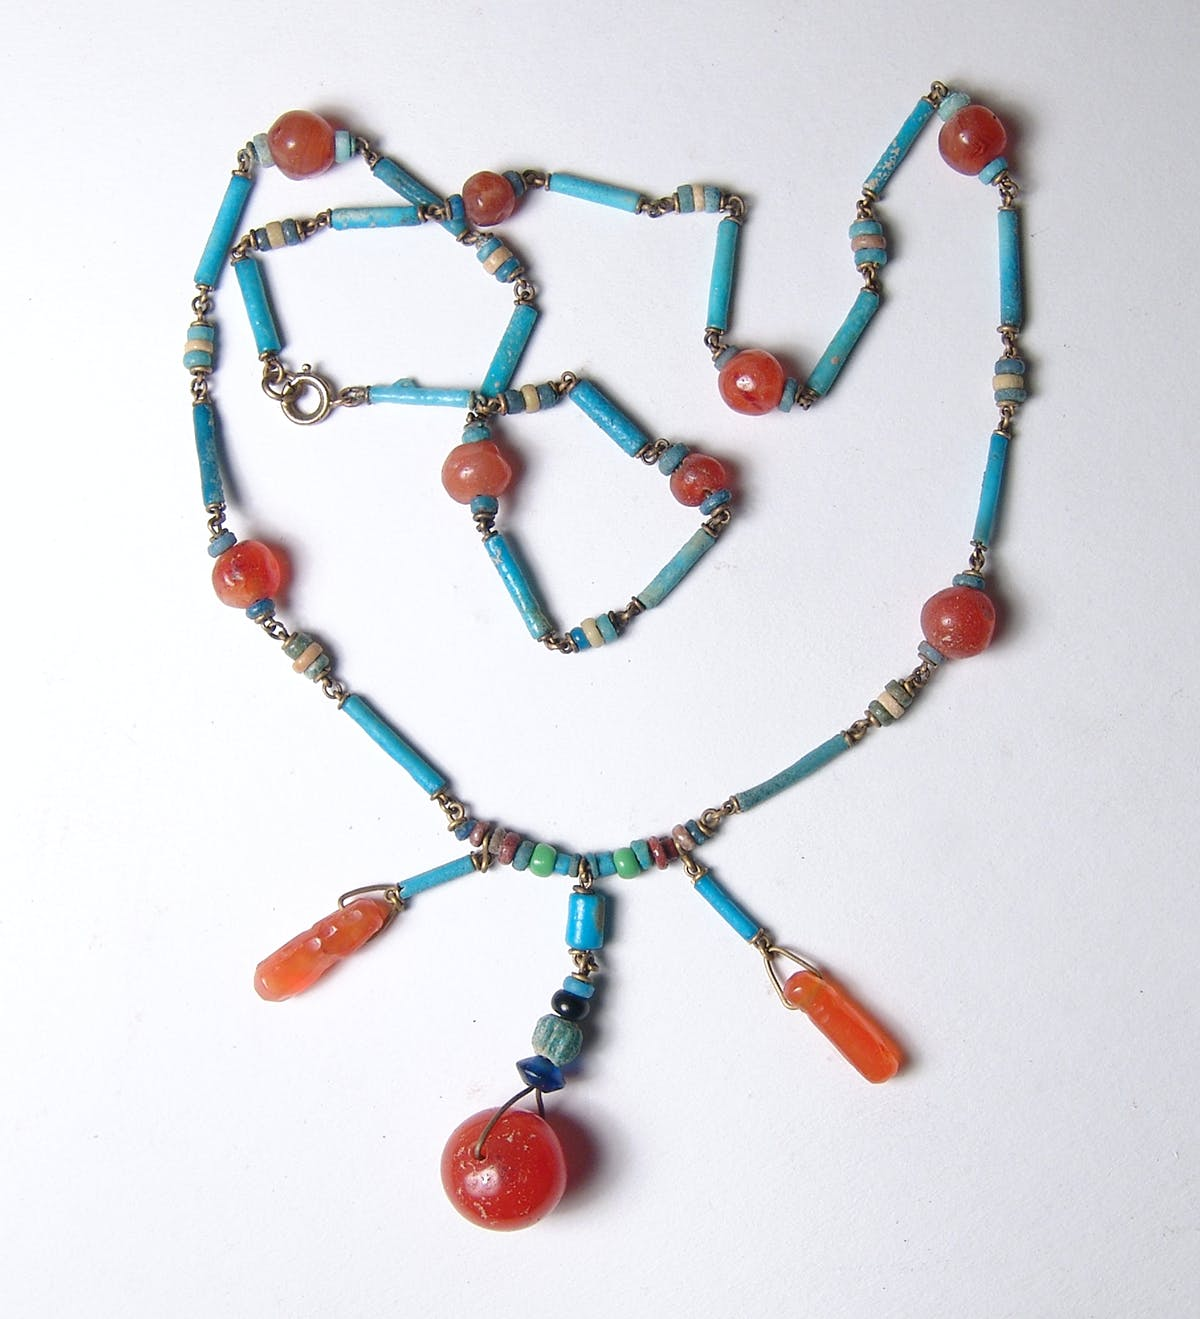 Beautiful Egyptian beaded necklace with carnelian stone embellishments from the Late Period (circa 664-30 BC), 22 inches long, from the collection of musician Ruth Deyo (est. $400-$500).